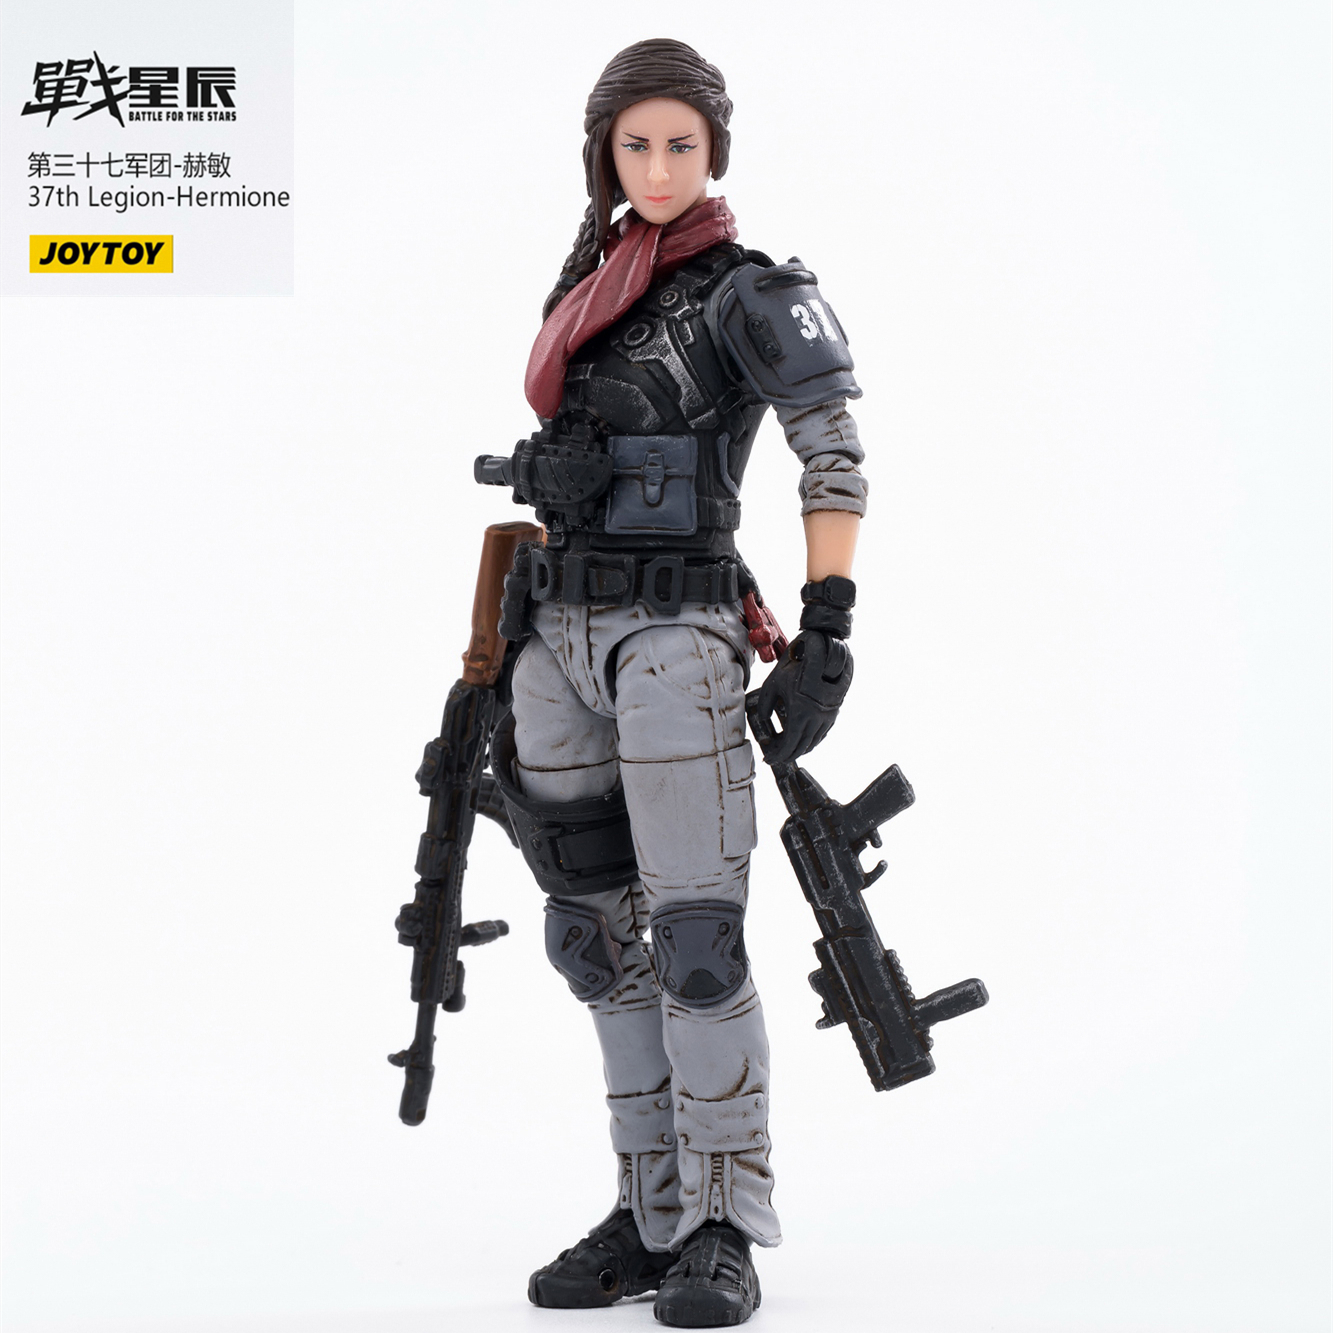 IN -STOCK  JOYTOY 1/18 PVC 10.5CM Action Figure Anime Female Soldier 37th Legion-Hermione And 04th Stina Free Shipping